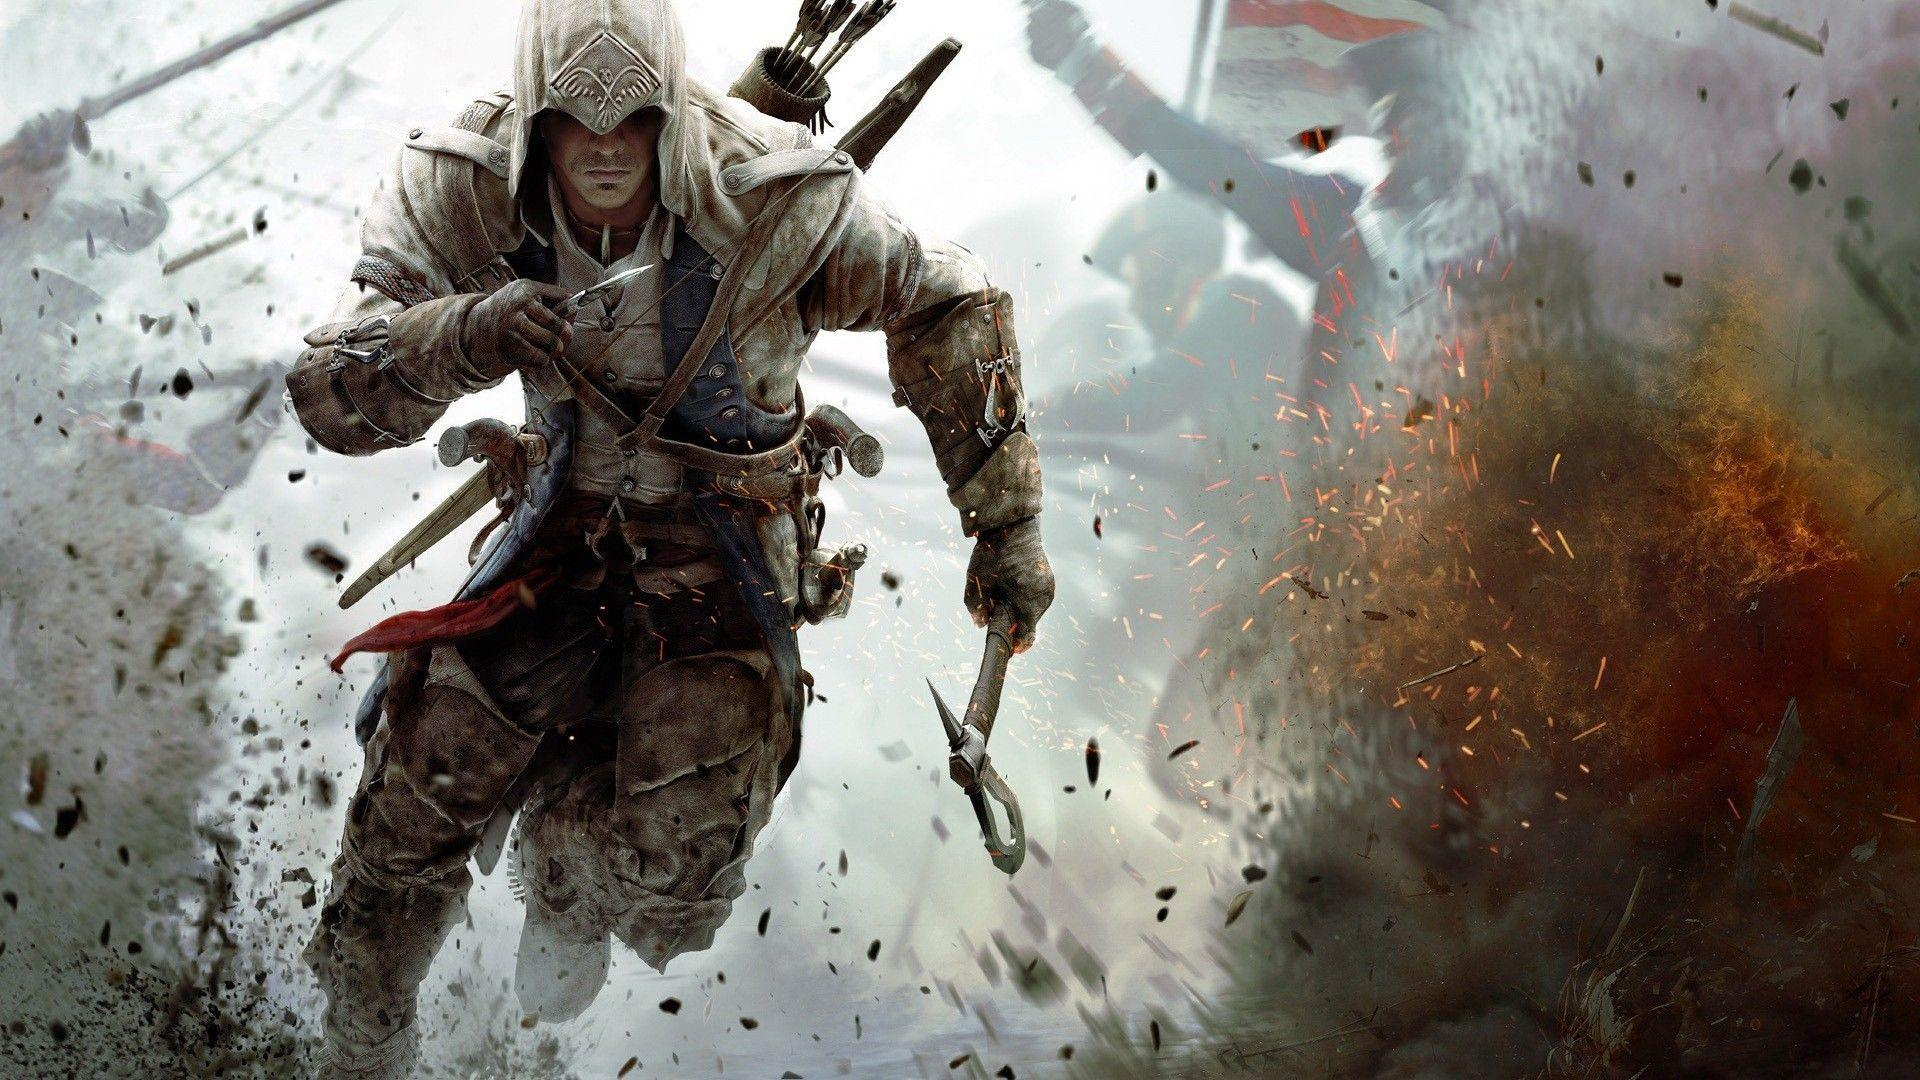 Wallpapers For > Assassins Creed 3 Wallpapers Hd 1080p